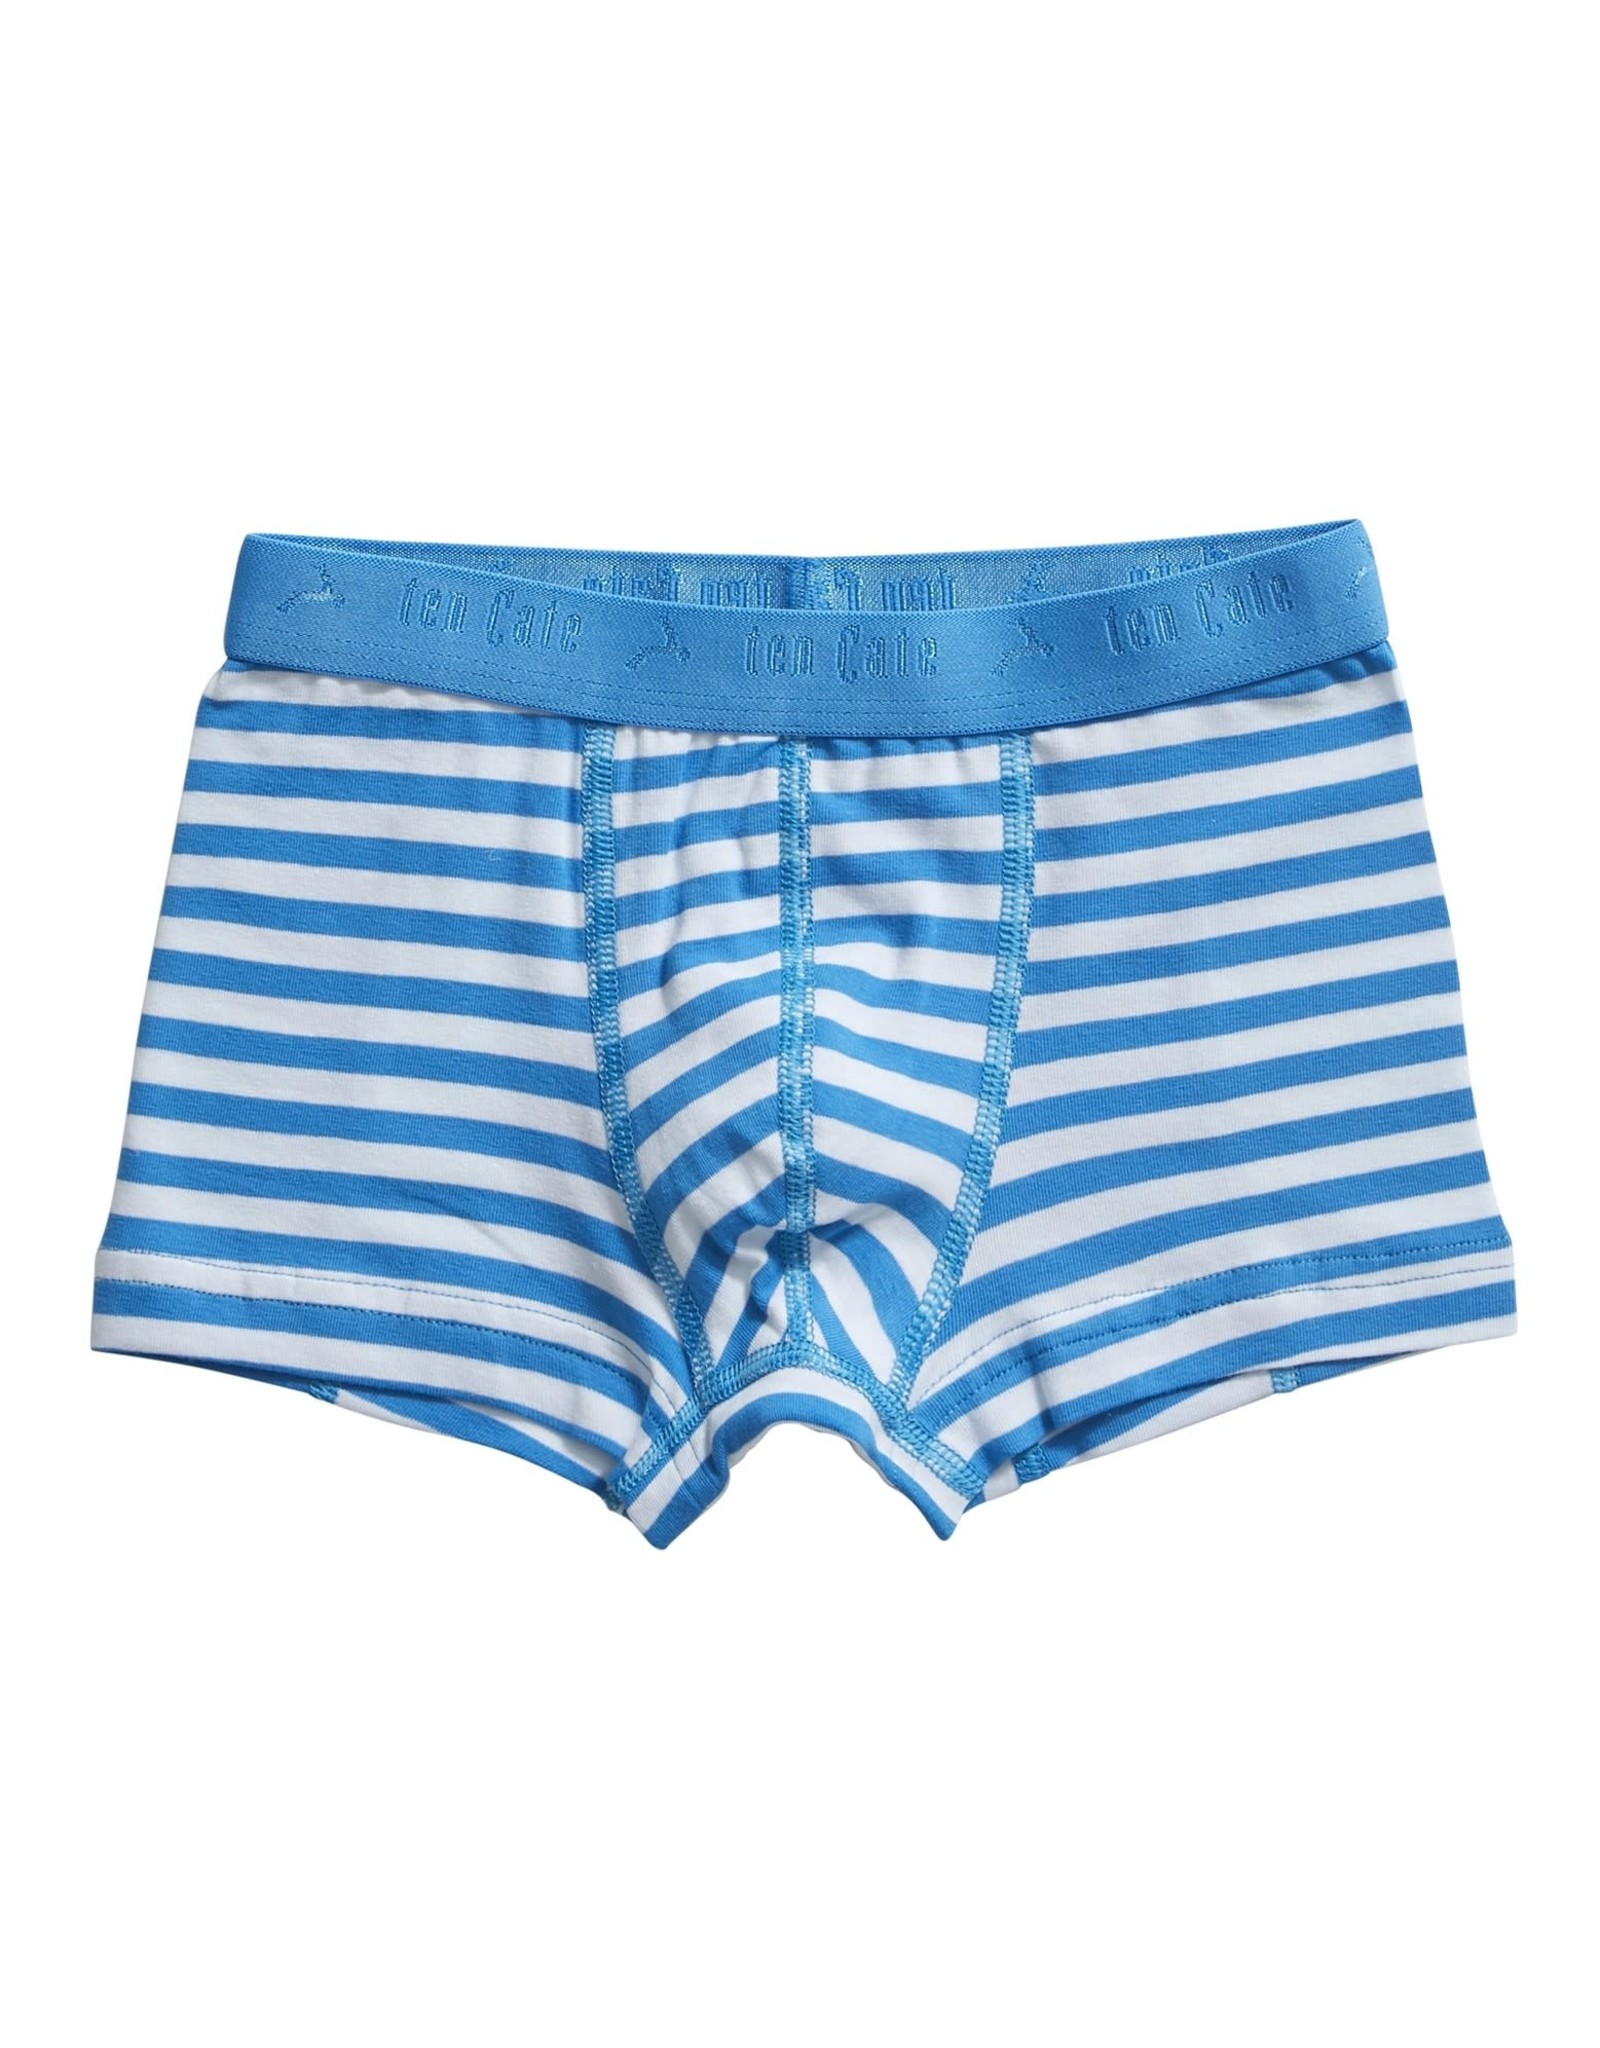 Ten Cate Basis boys shorts 2 pack stripe and diva